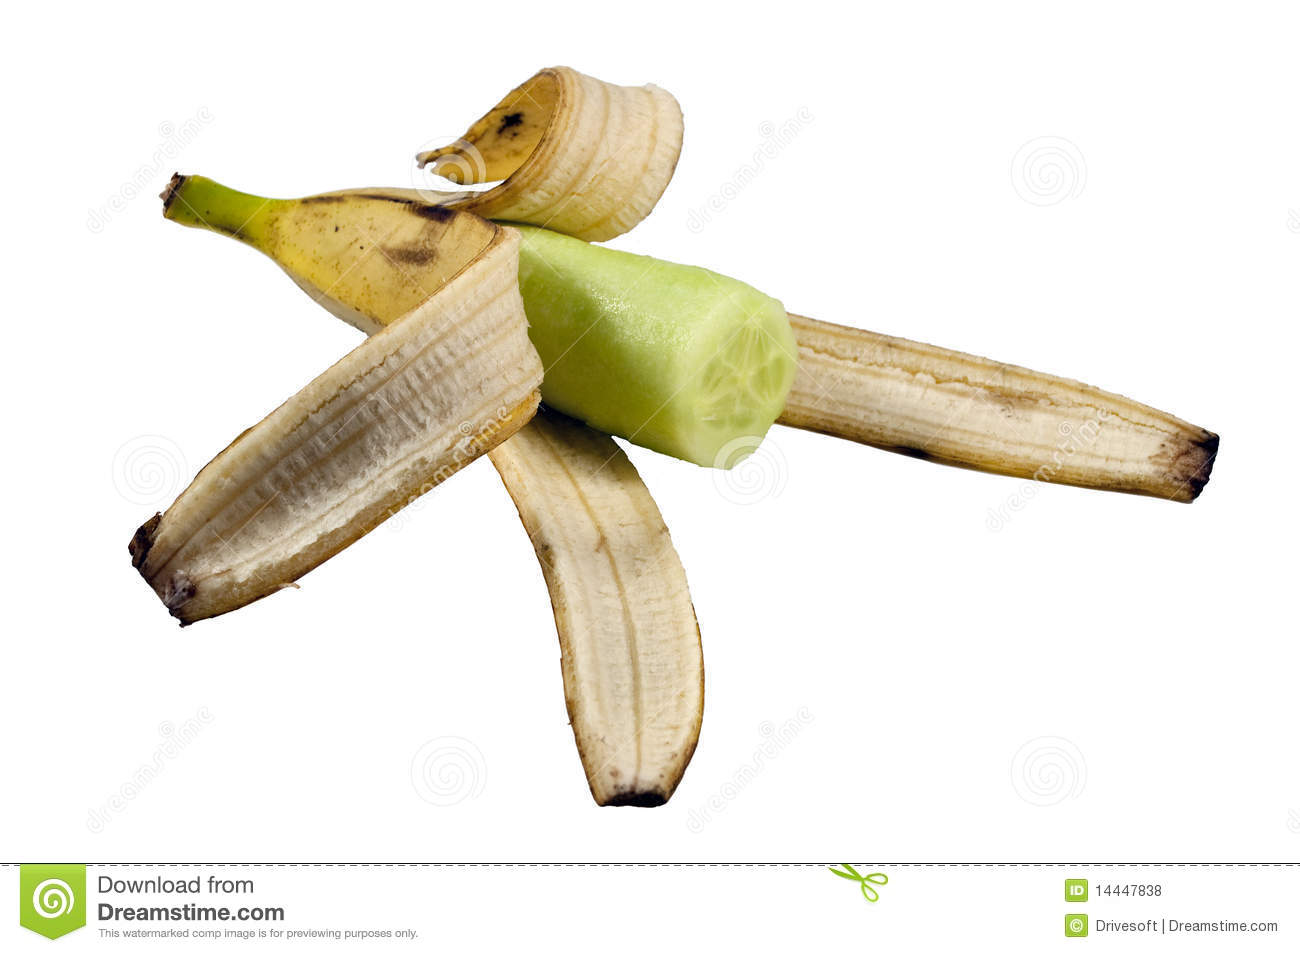 The cucumber the banana or maybe his dick 6